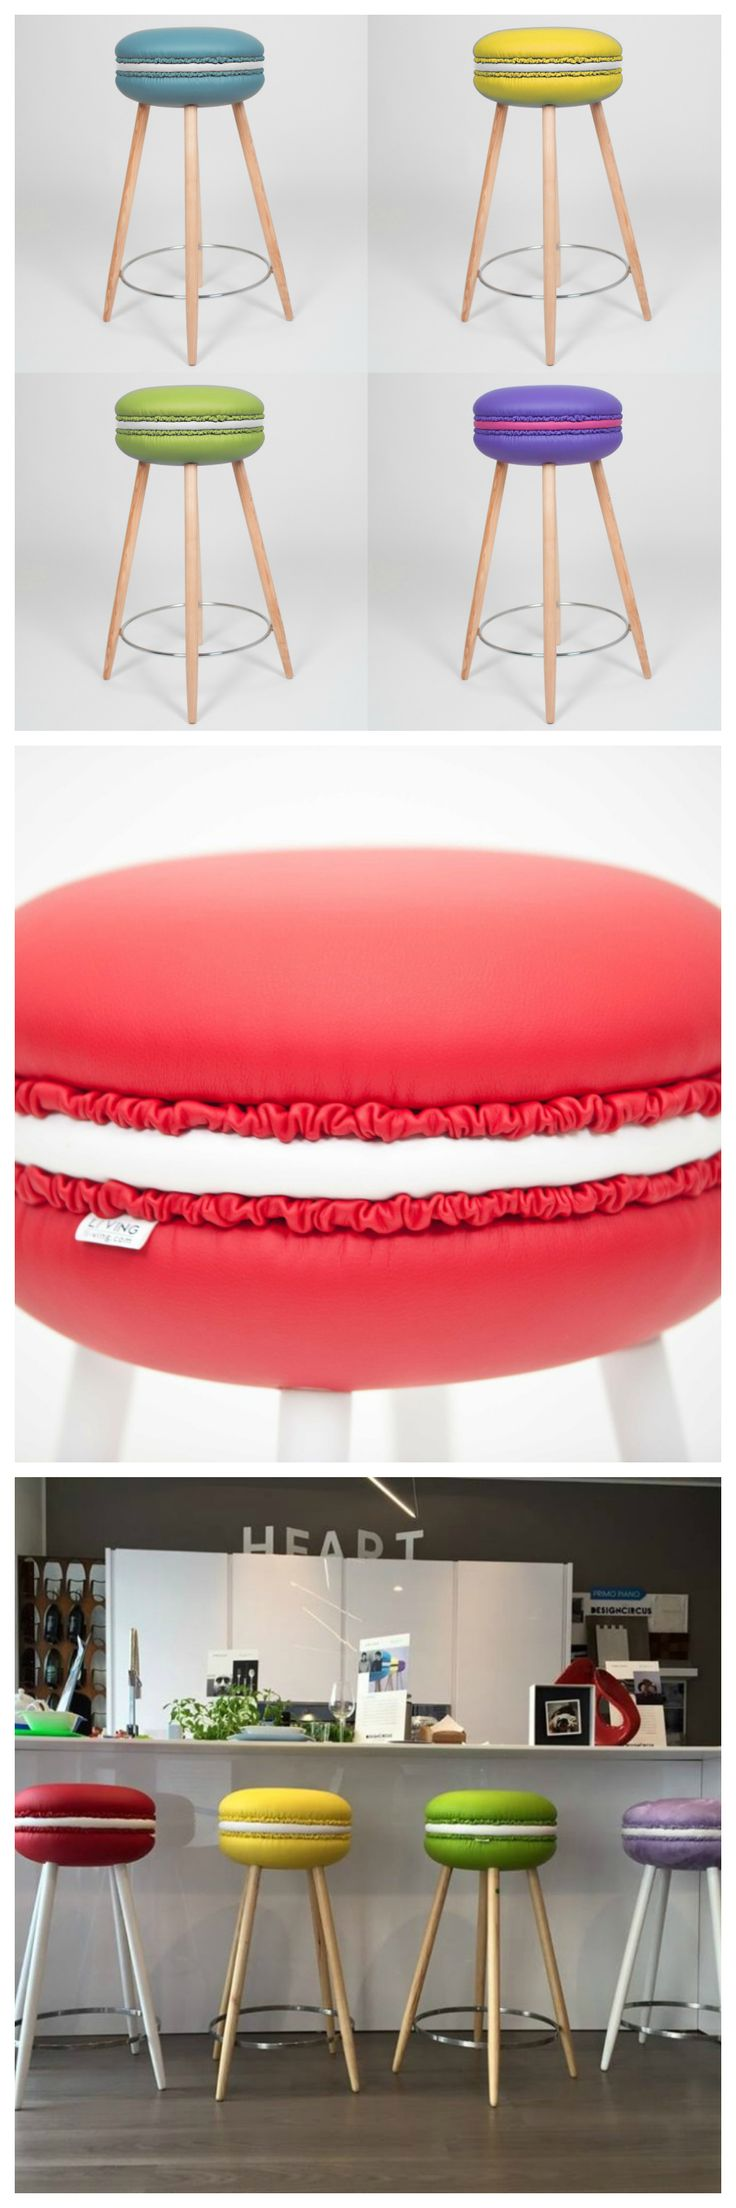 If i were to do a macaron store these would b perfect! Makastool by LI VING, a design studio from Manfredonia. Coloured and sweet as a macaron.                                                                                                                                                      More